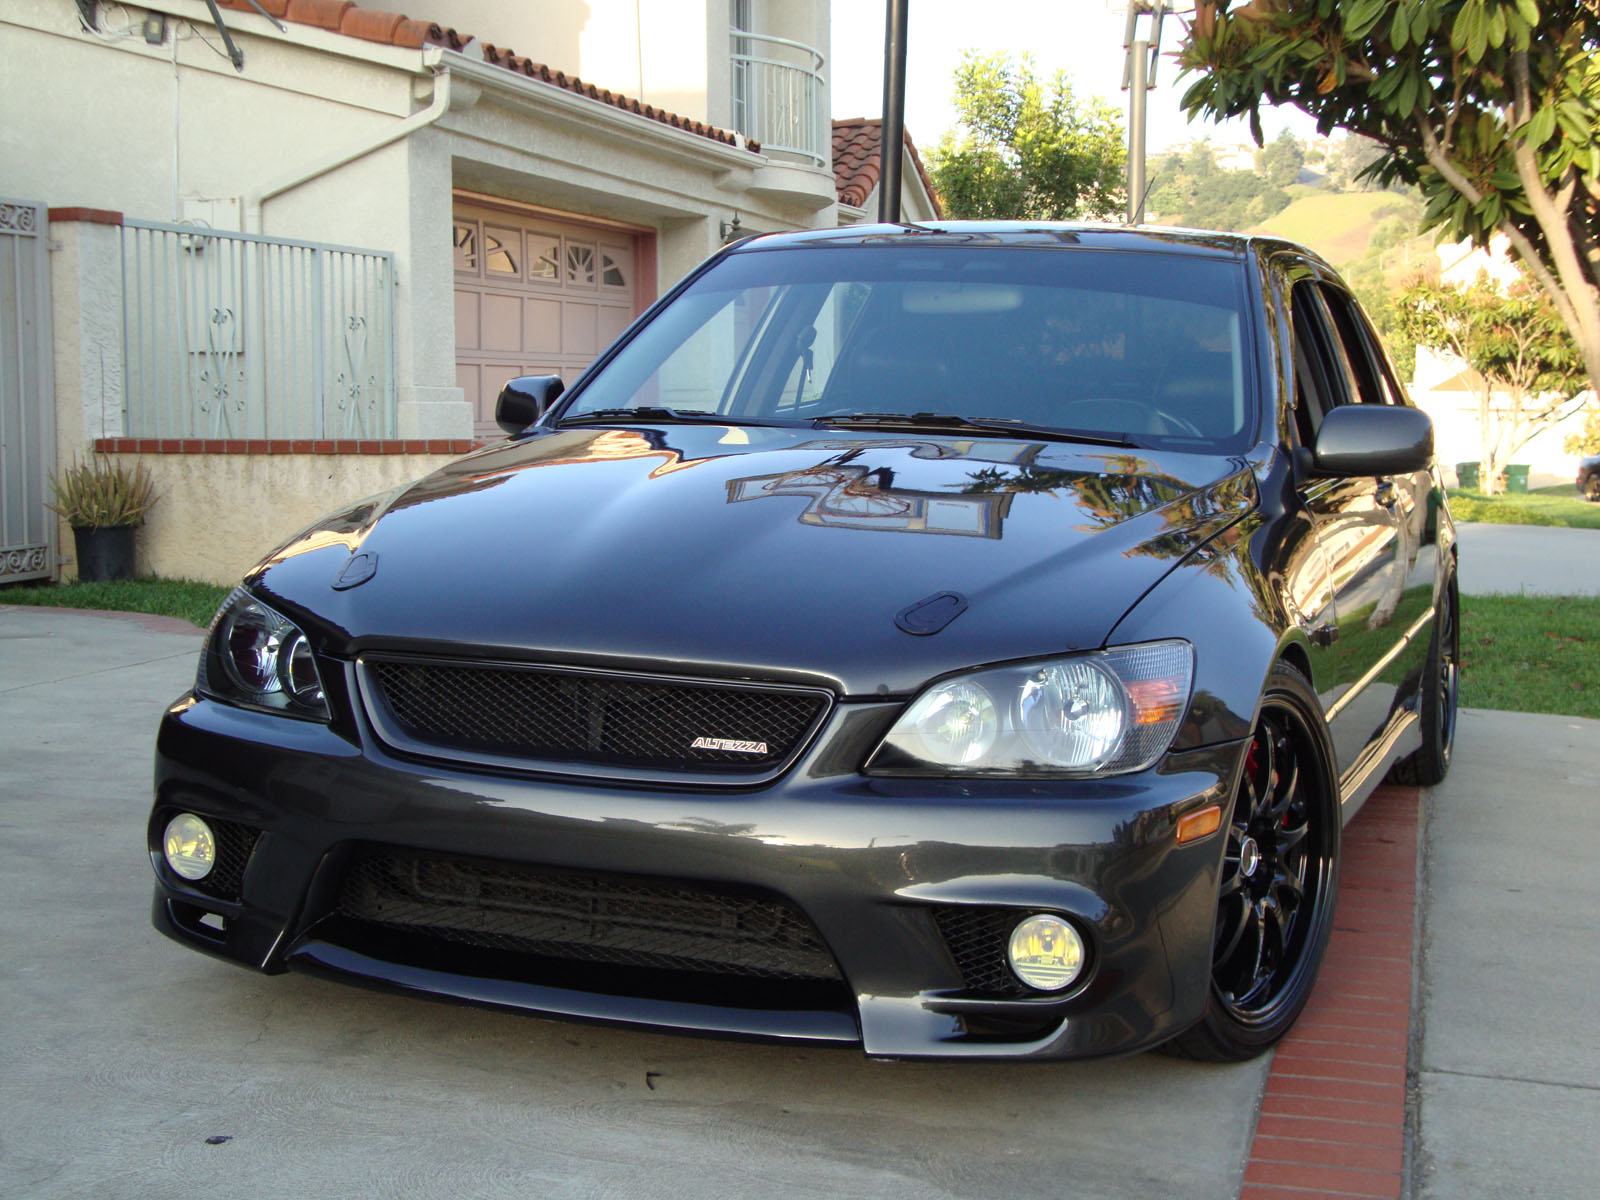 2002 Lexus IS 300 Information and photos MOMENTcar